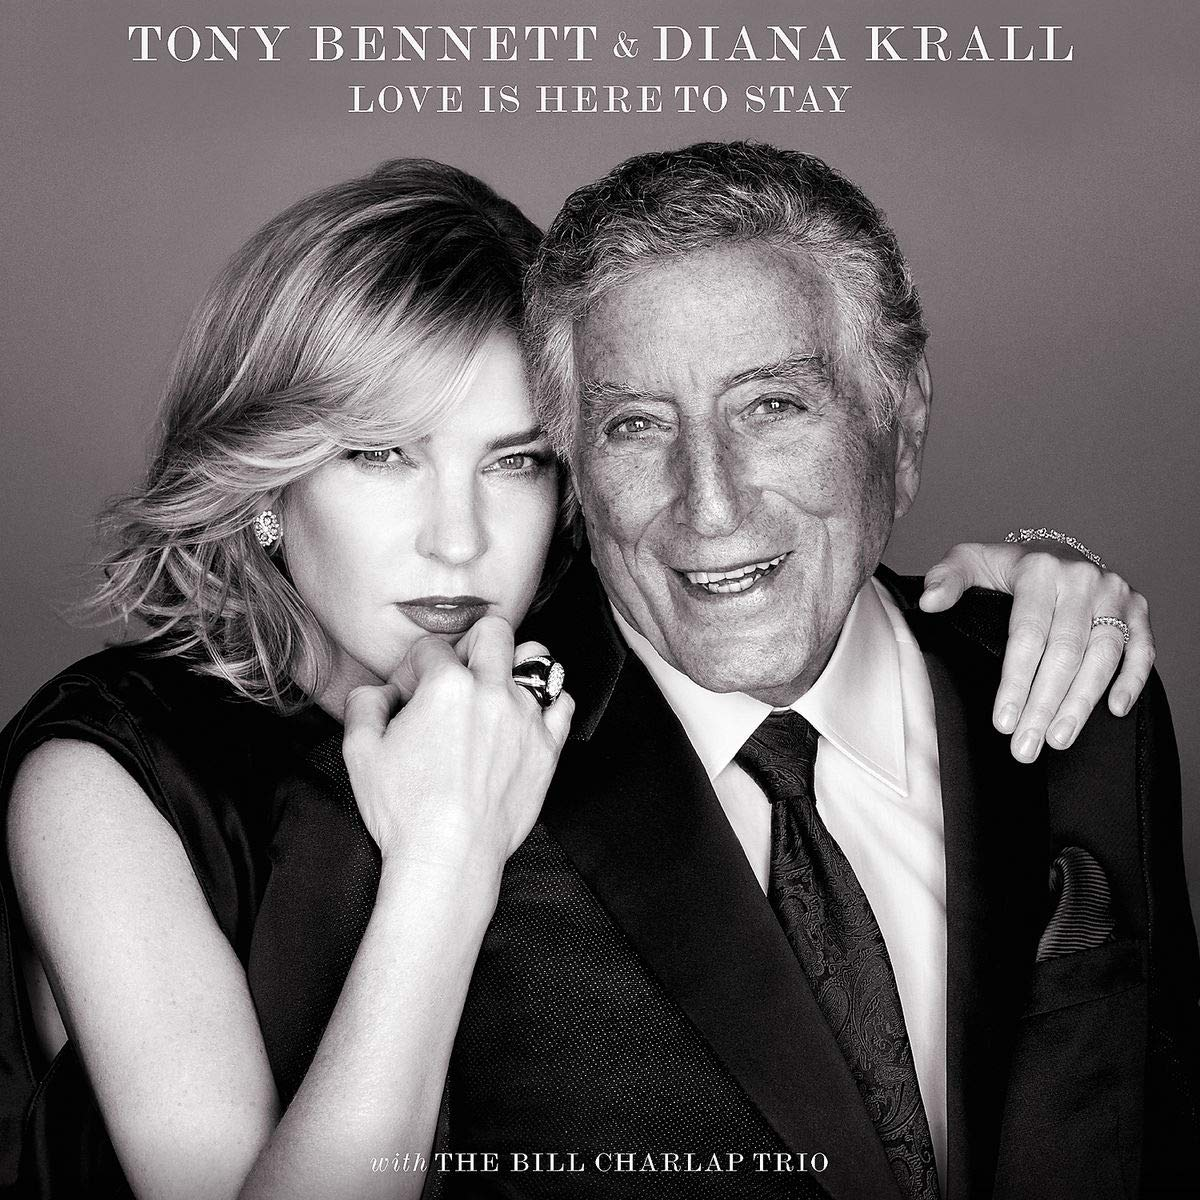 Vinilo : TONY BENNETT/DIANA KRALL - Love Is Here To Stay (LP Vinyl)